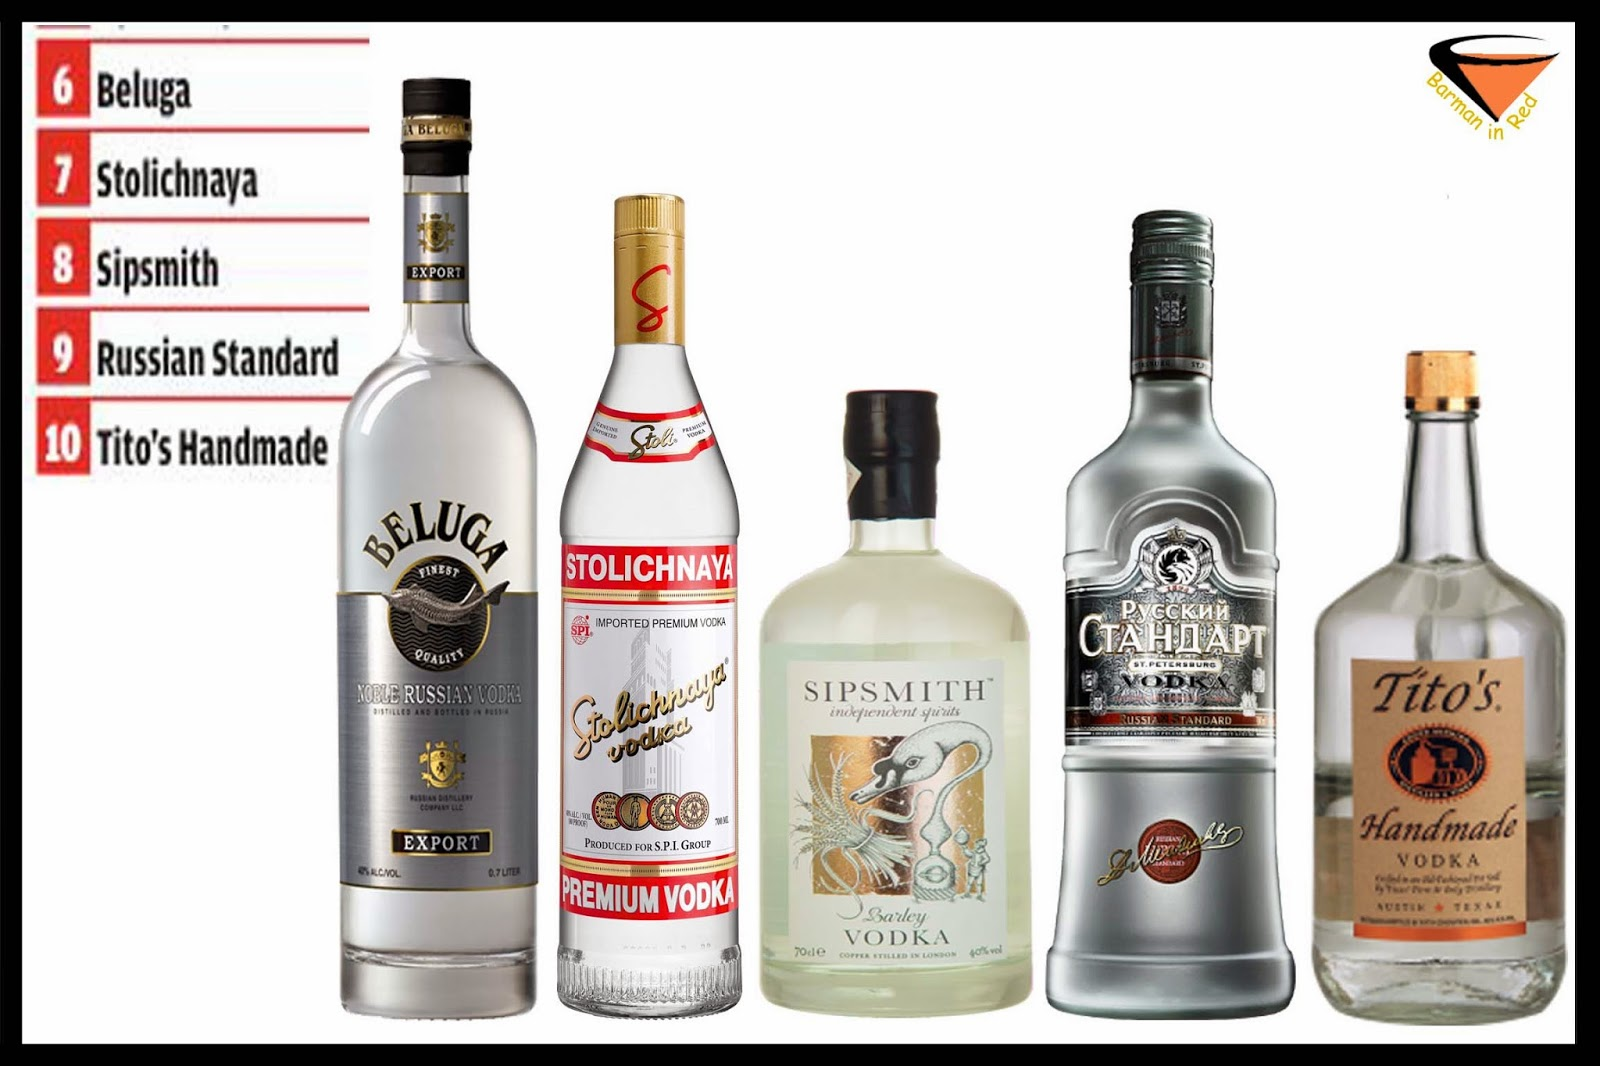 10 vodkas tendencia